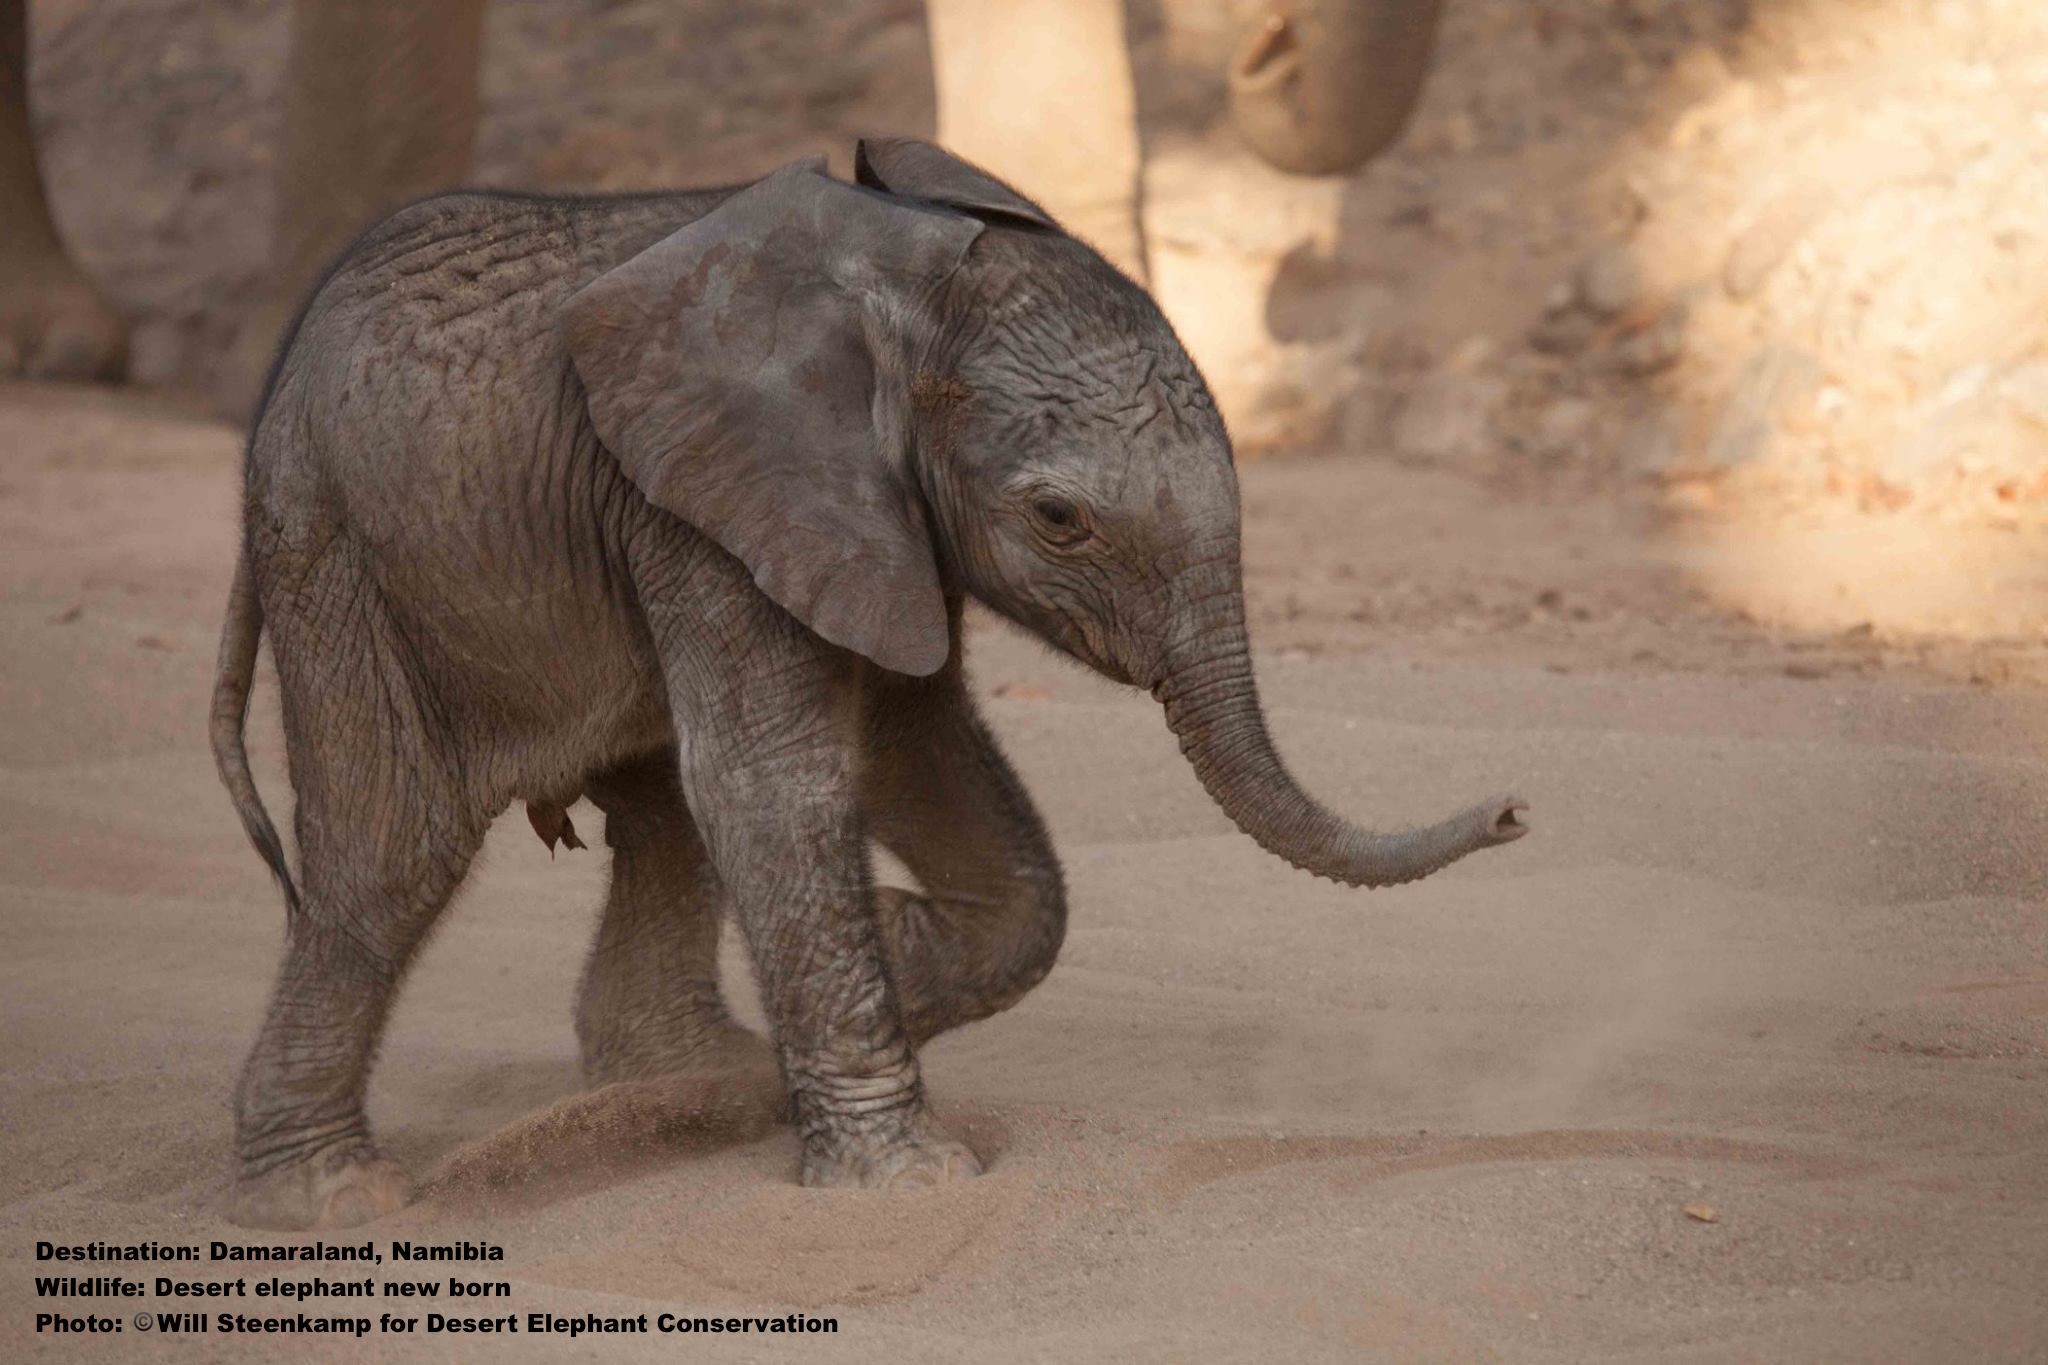 Hours old. harsh environmental conditions bring this desert elephant babie's chance of survival down to 50% of its savanna cousin's. Couple that with shrinking habitat and poaching and the babie's odds of growing old are not promising. Image: Thanks to Will Steenkamp, and  Desert Elephant Conservation .